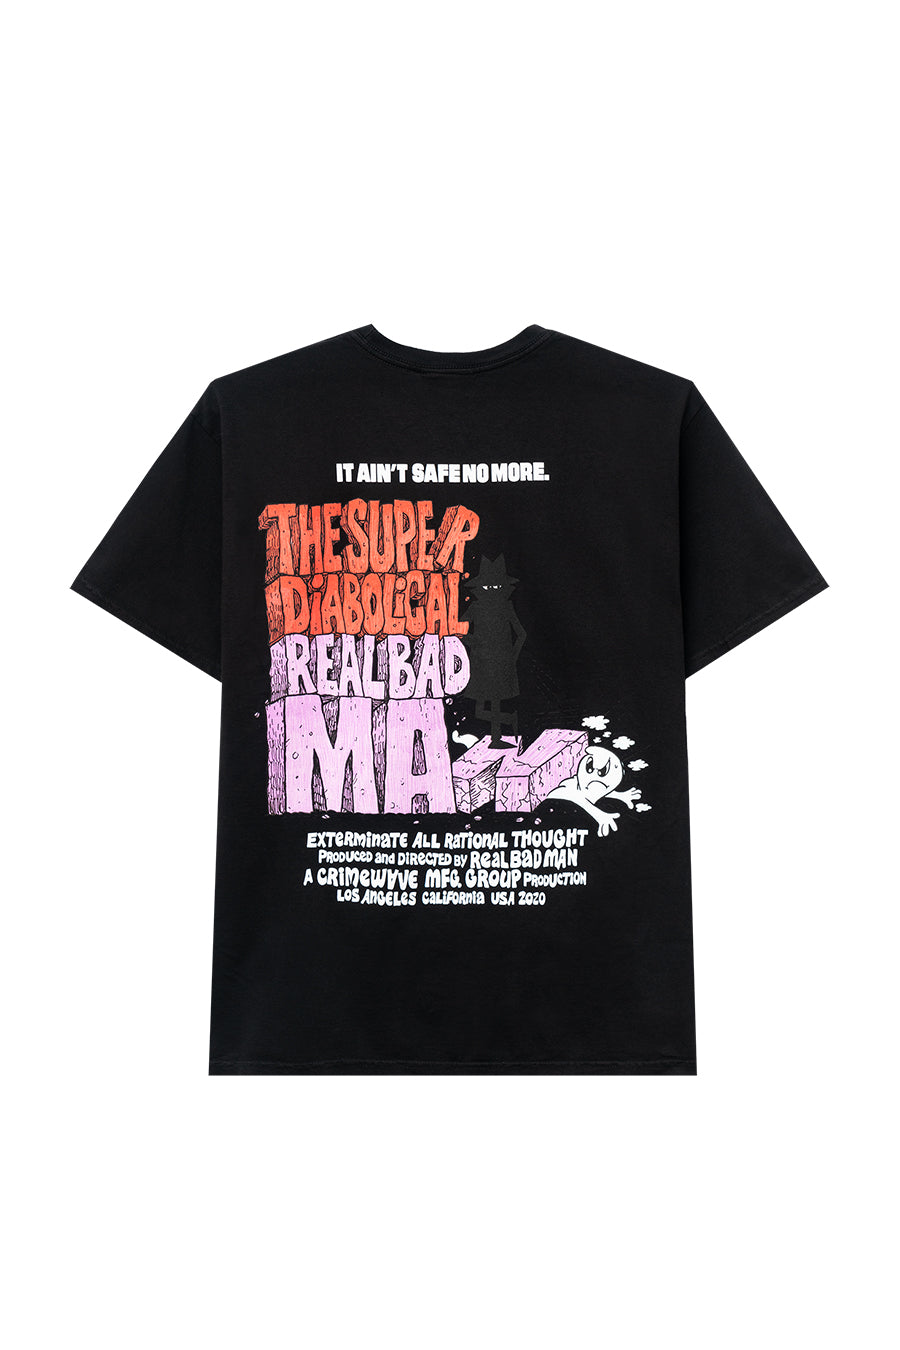 Real Bad Man - Black Super Diabolical T-Shirt | 1032 SPACE